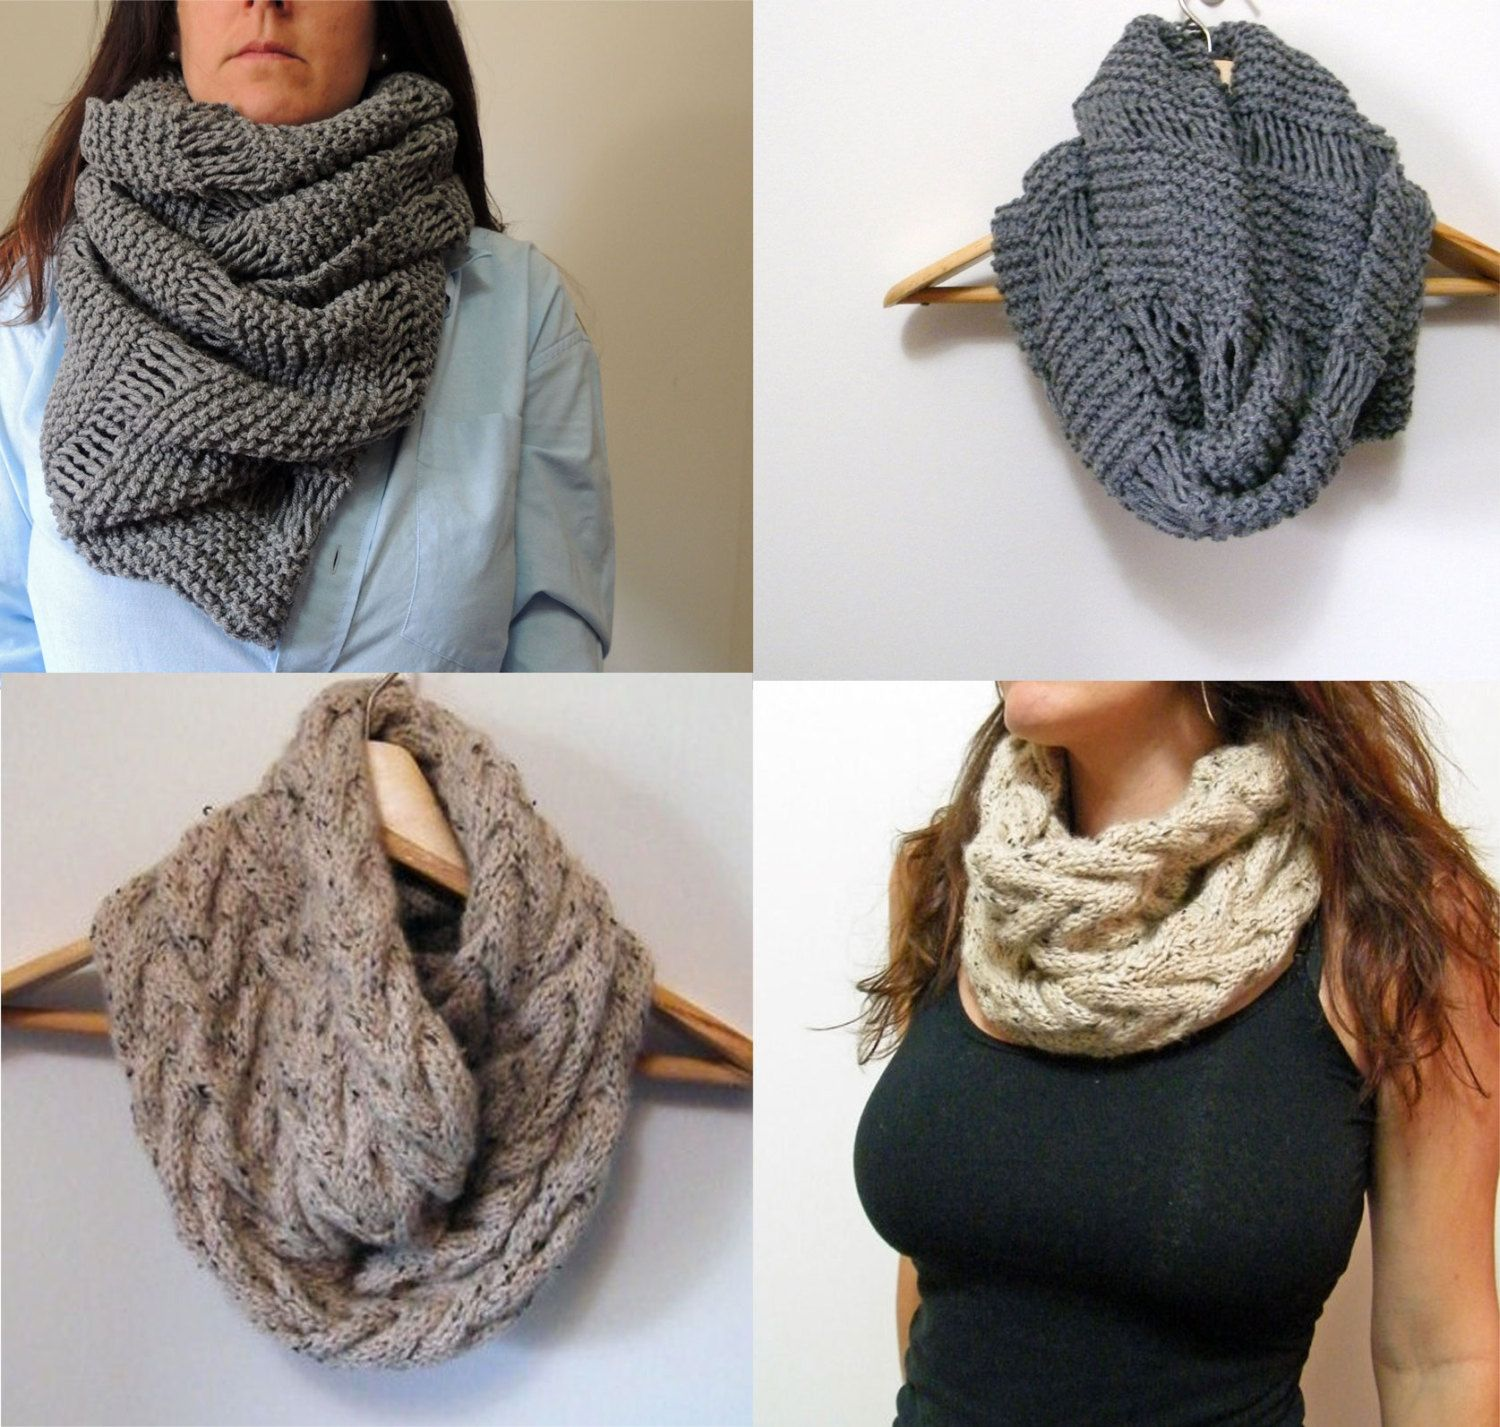 2 Knitting Patterns Oversized Cowl Infinity Scarf & By